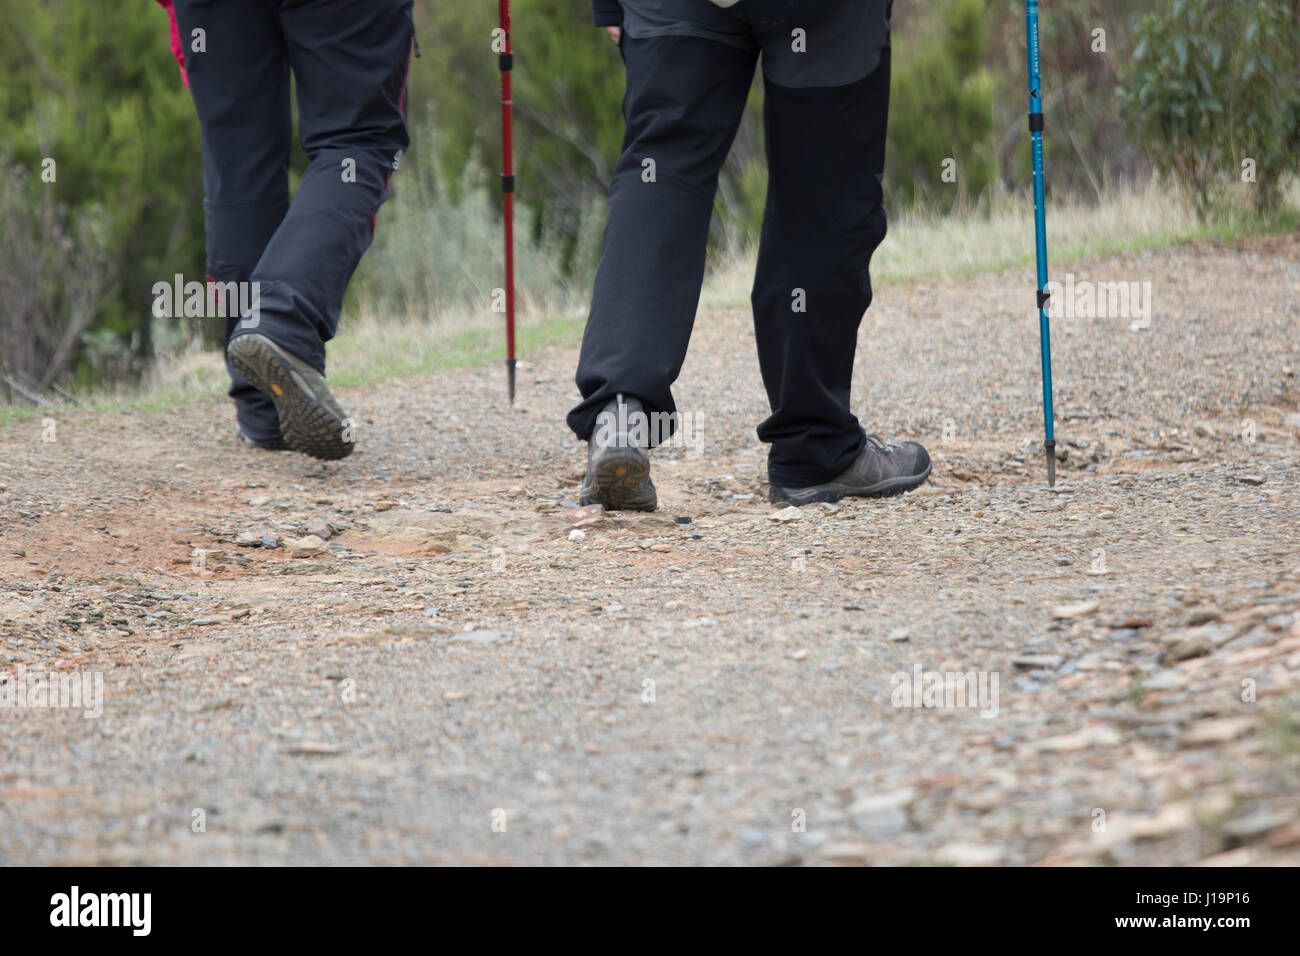 Walking, trekking or maybe goin hiking in the mountains - Stock Image